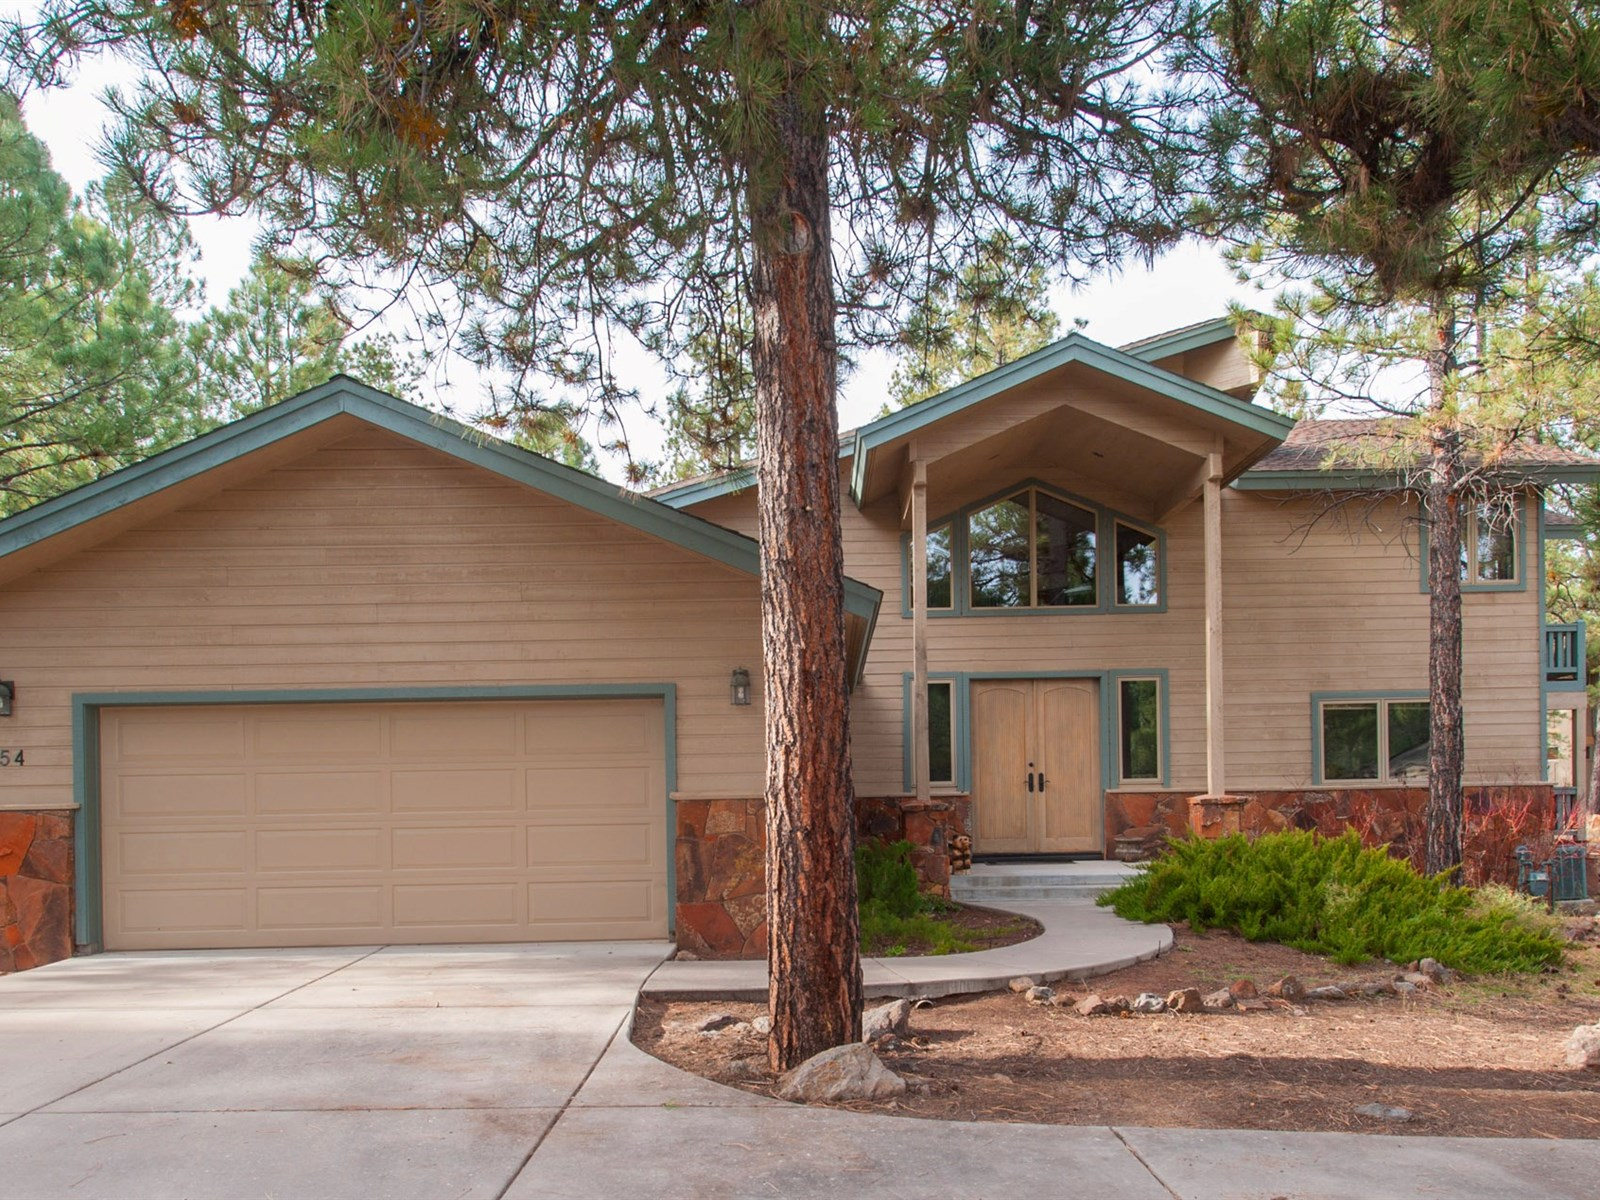 Moradia para Venda às Beautiful Flagstaff Home 2562 Hart Merriam Flagstaff, Arizona 86004 Estados Unidos